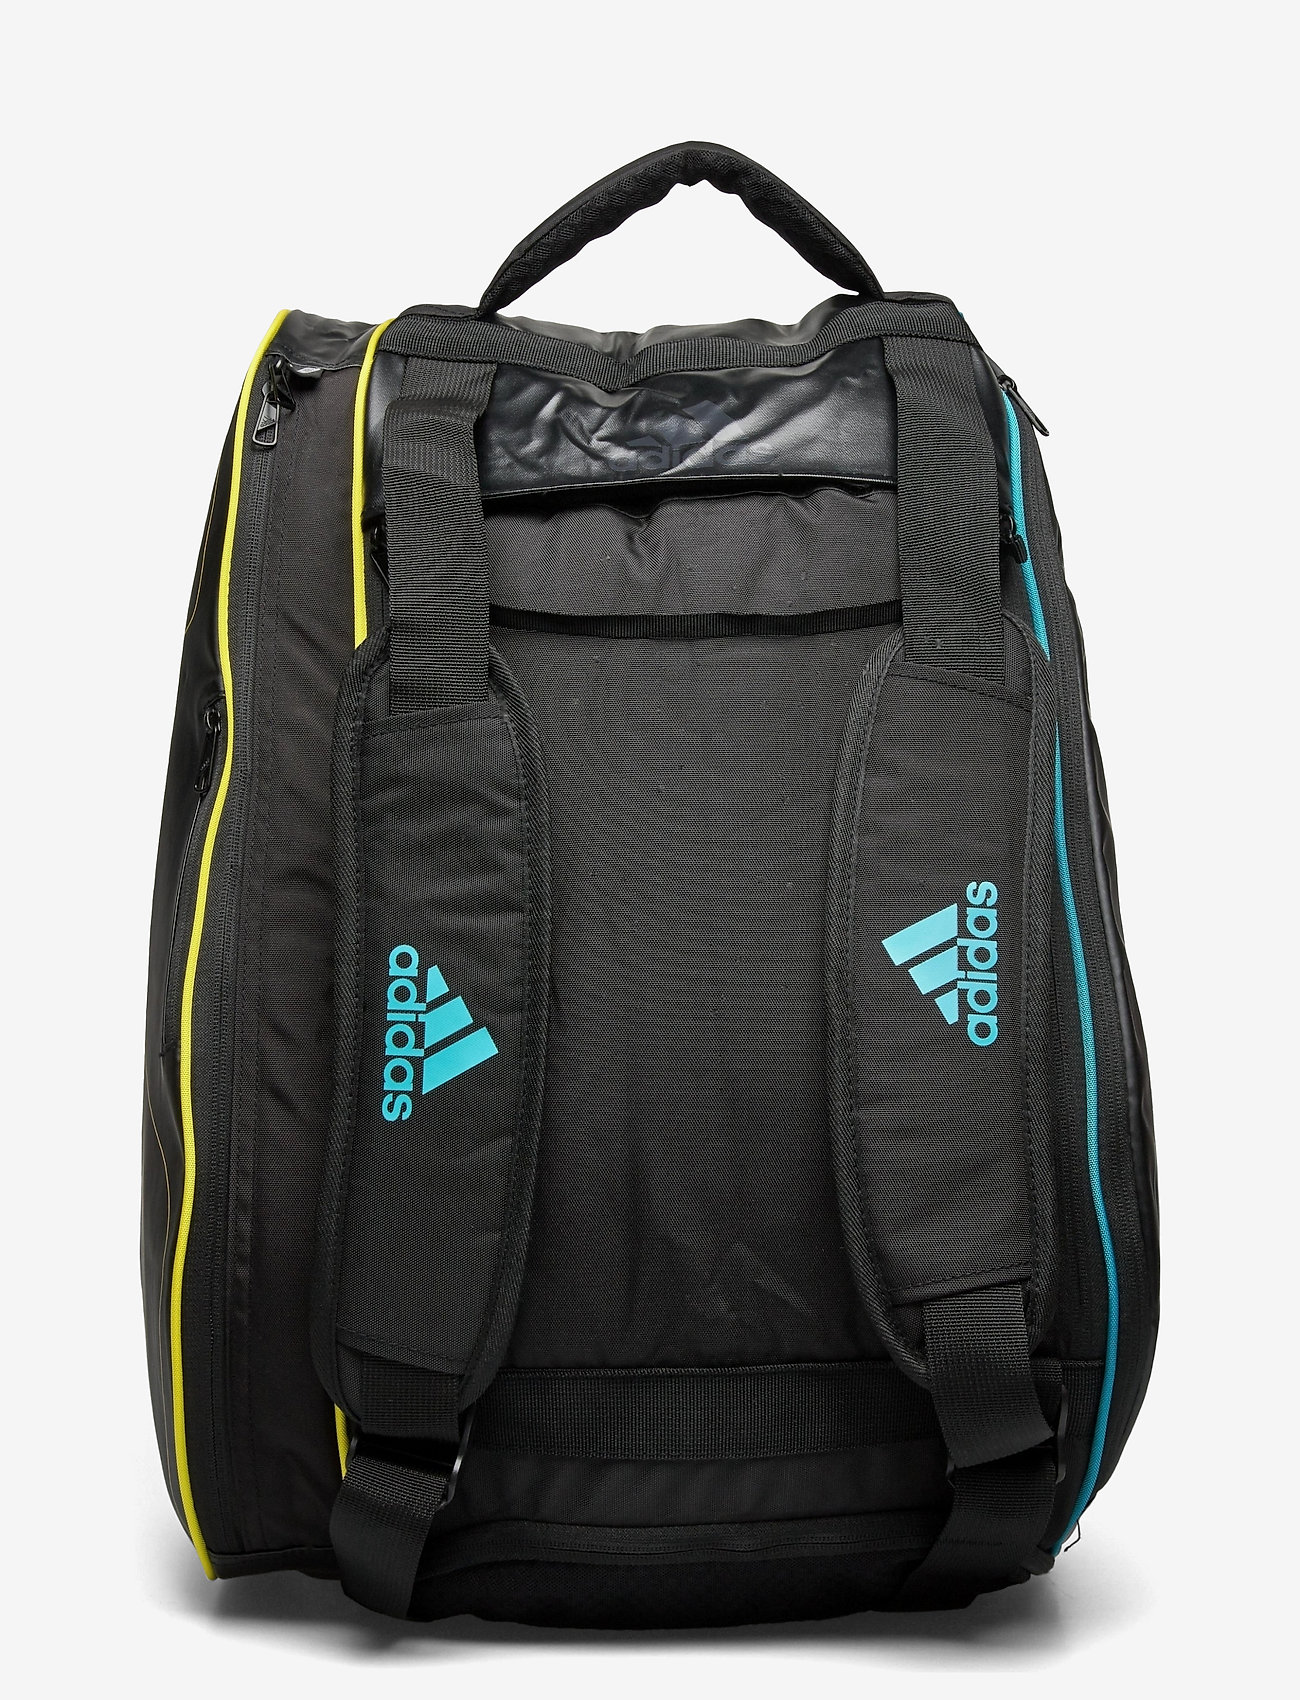 adidas Performance - Racket Bag TOUR - ketsjersporttasker - yell./blue - 1